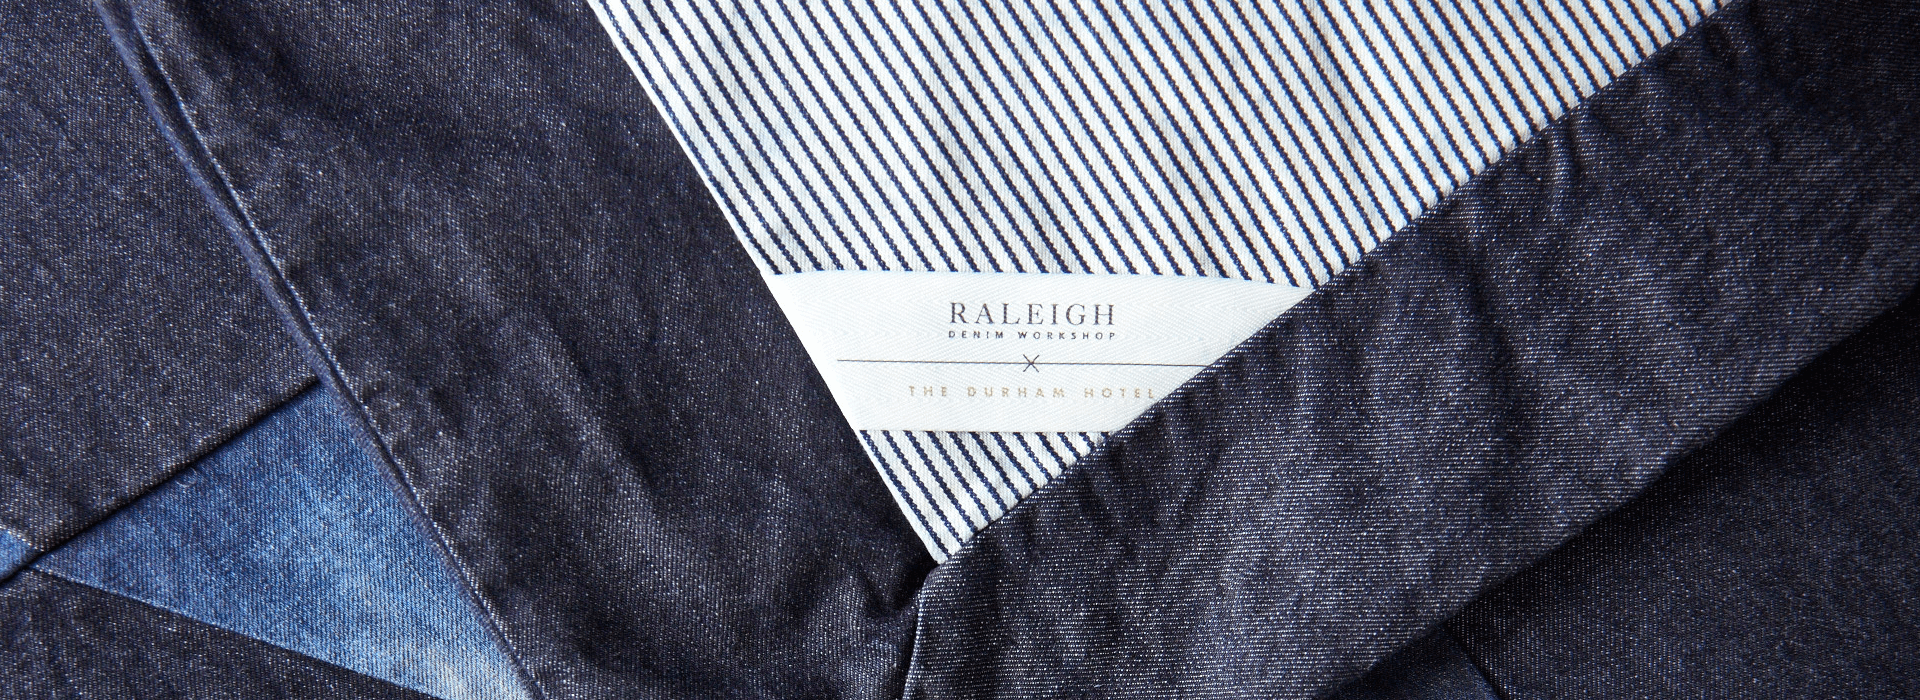 Raleigh Denim_3